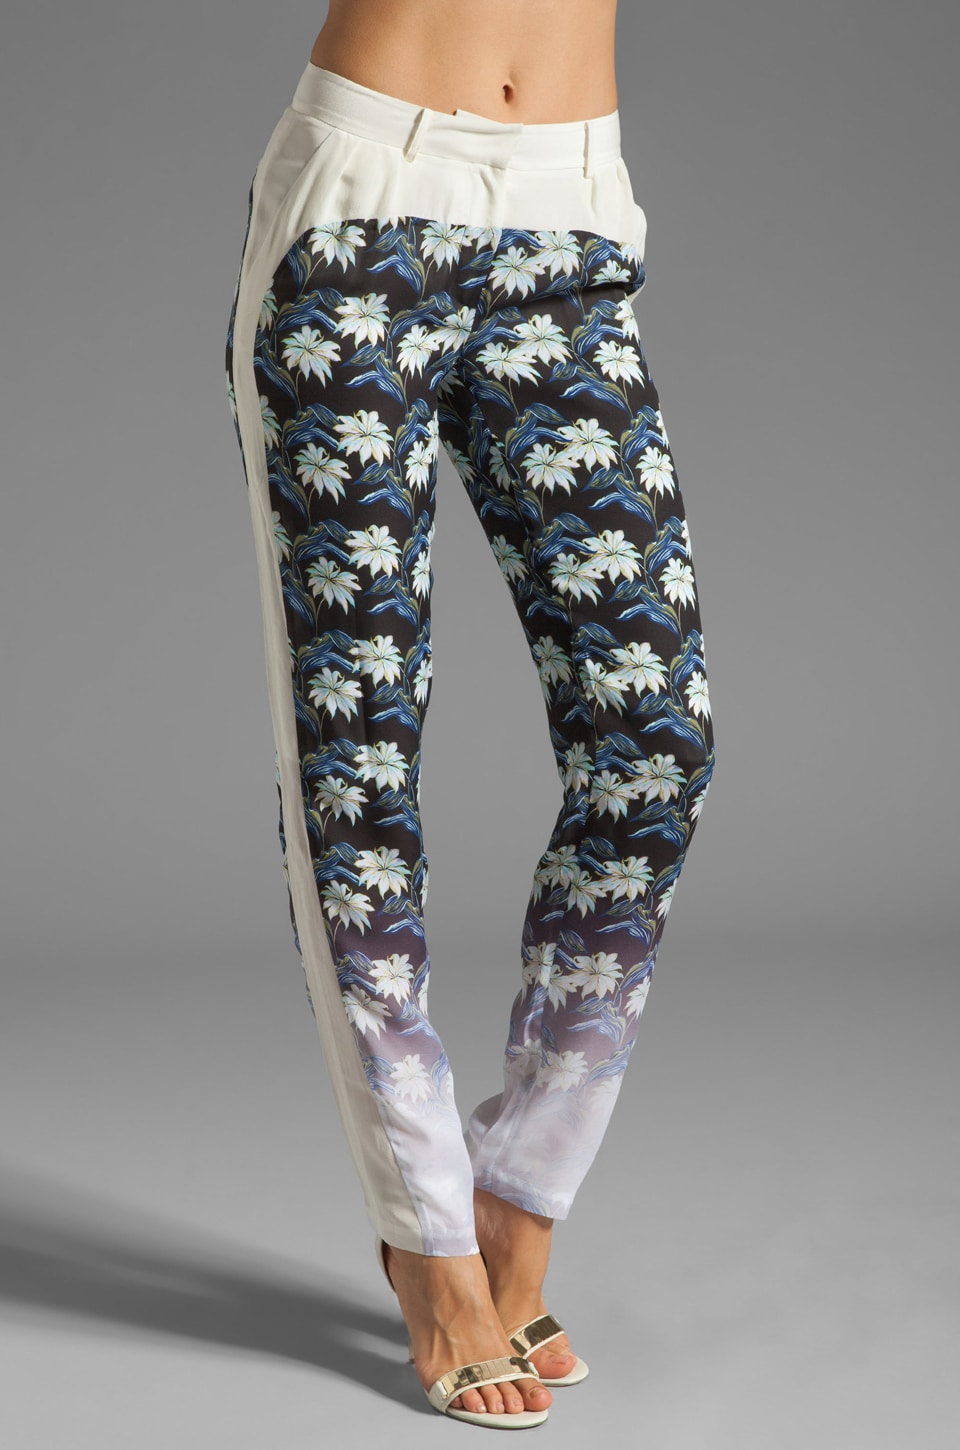 Rebecca Minkoff Rio Pants in Black Multi